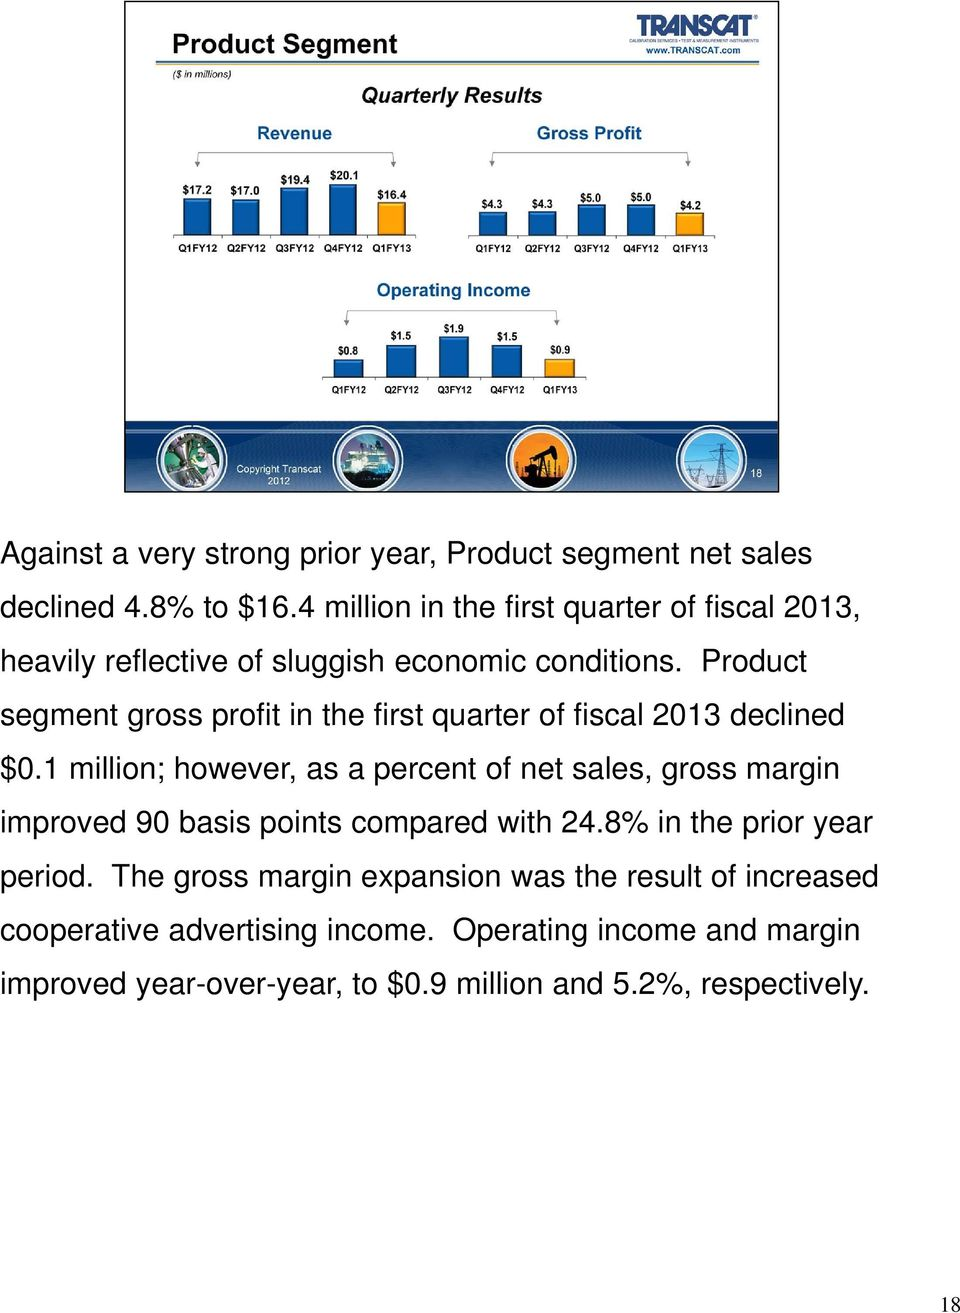 Product segment gross profit in the first quarter of fiscal 2013 declined $0.